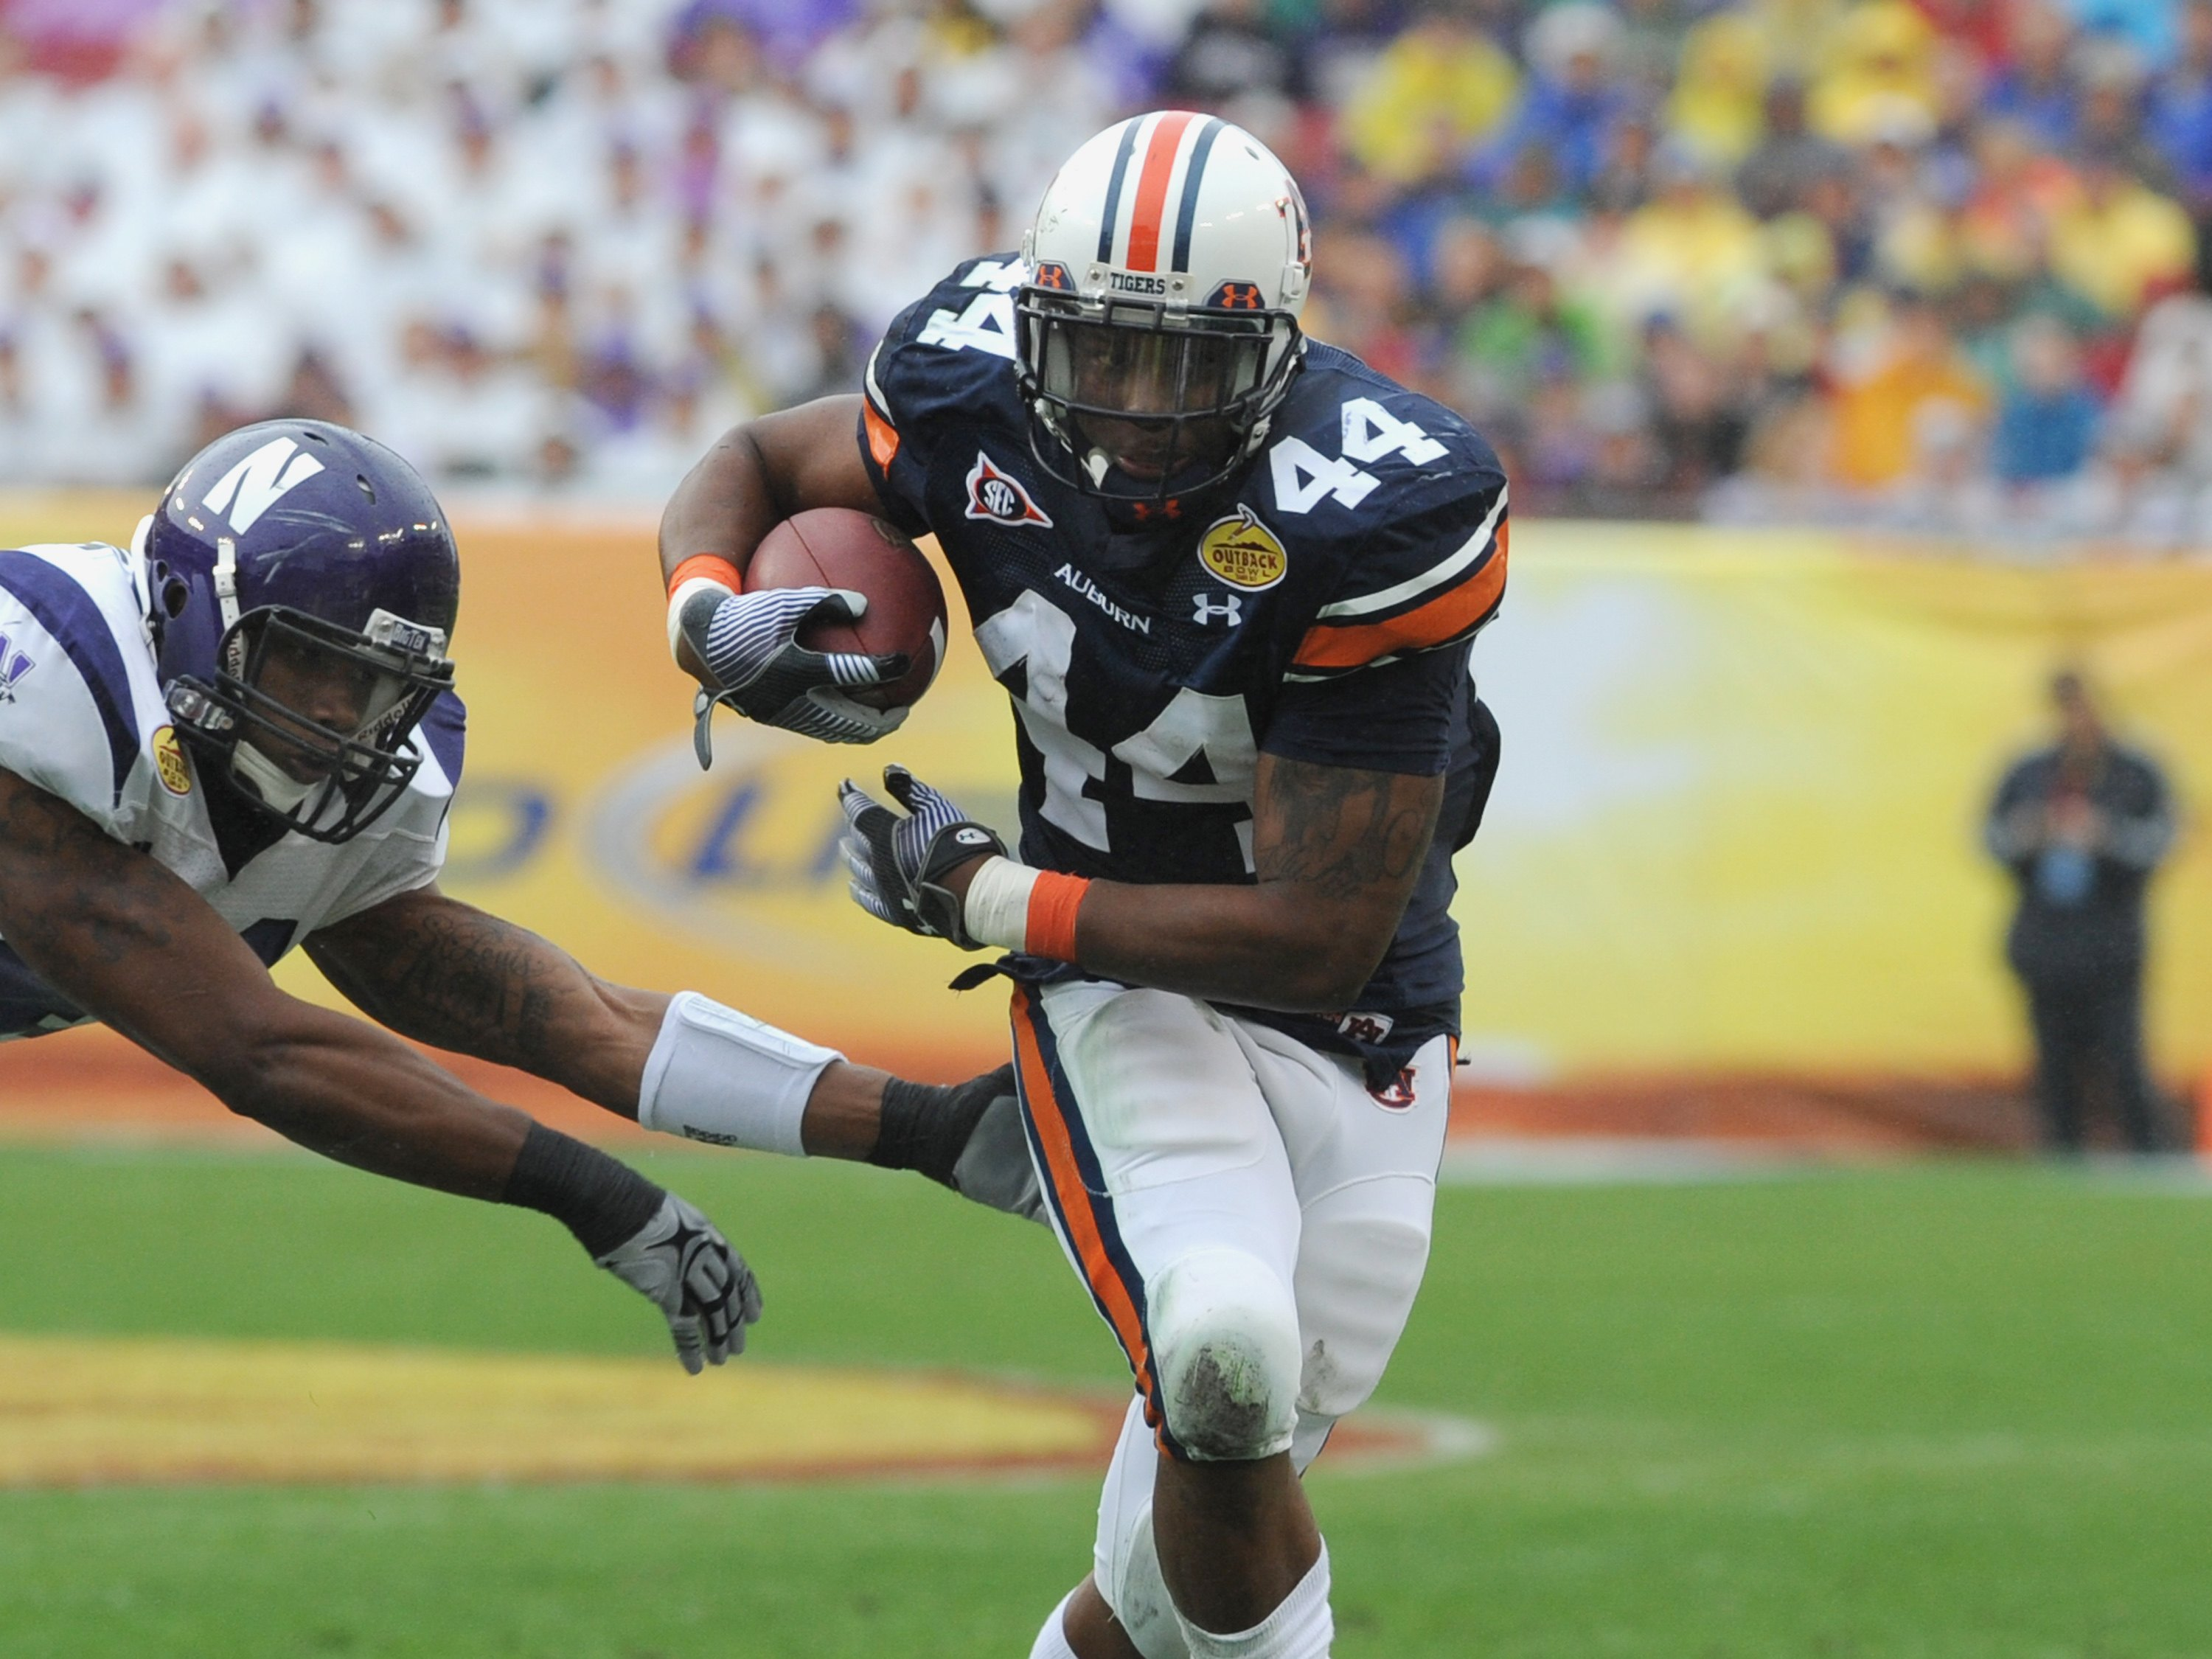 TAMPA, FL - JANUARY 1: Running back Ben Tate #44 of the Auburn Tigers rushes upfield against the Northwestern Wildcats in the Outback Bowl January 1, 2010 at Raymond James Stadium in Tampa, Florida.  (Photo by Al Messerschmidt/Getty Images)